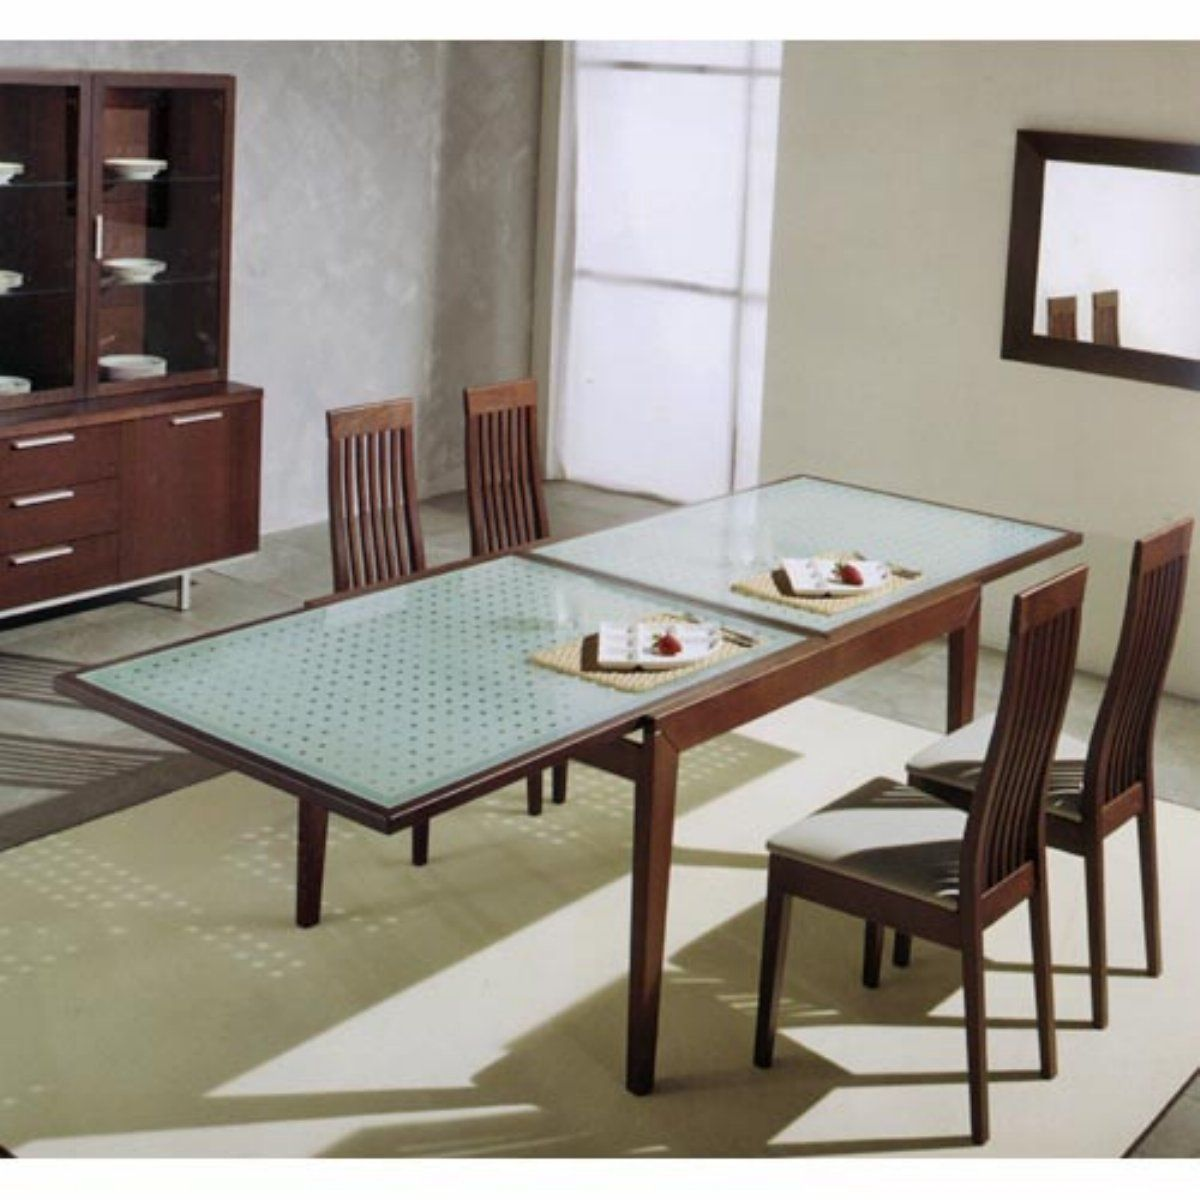 Extendable Glass Top Dining Table Glass Dining Room Table Glass Top Dining Table Glass Dining Table